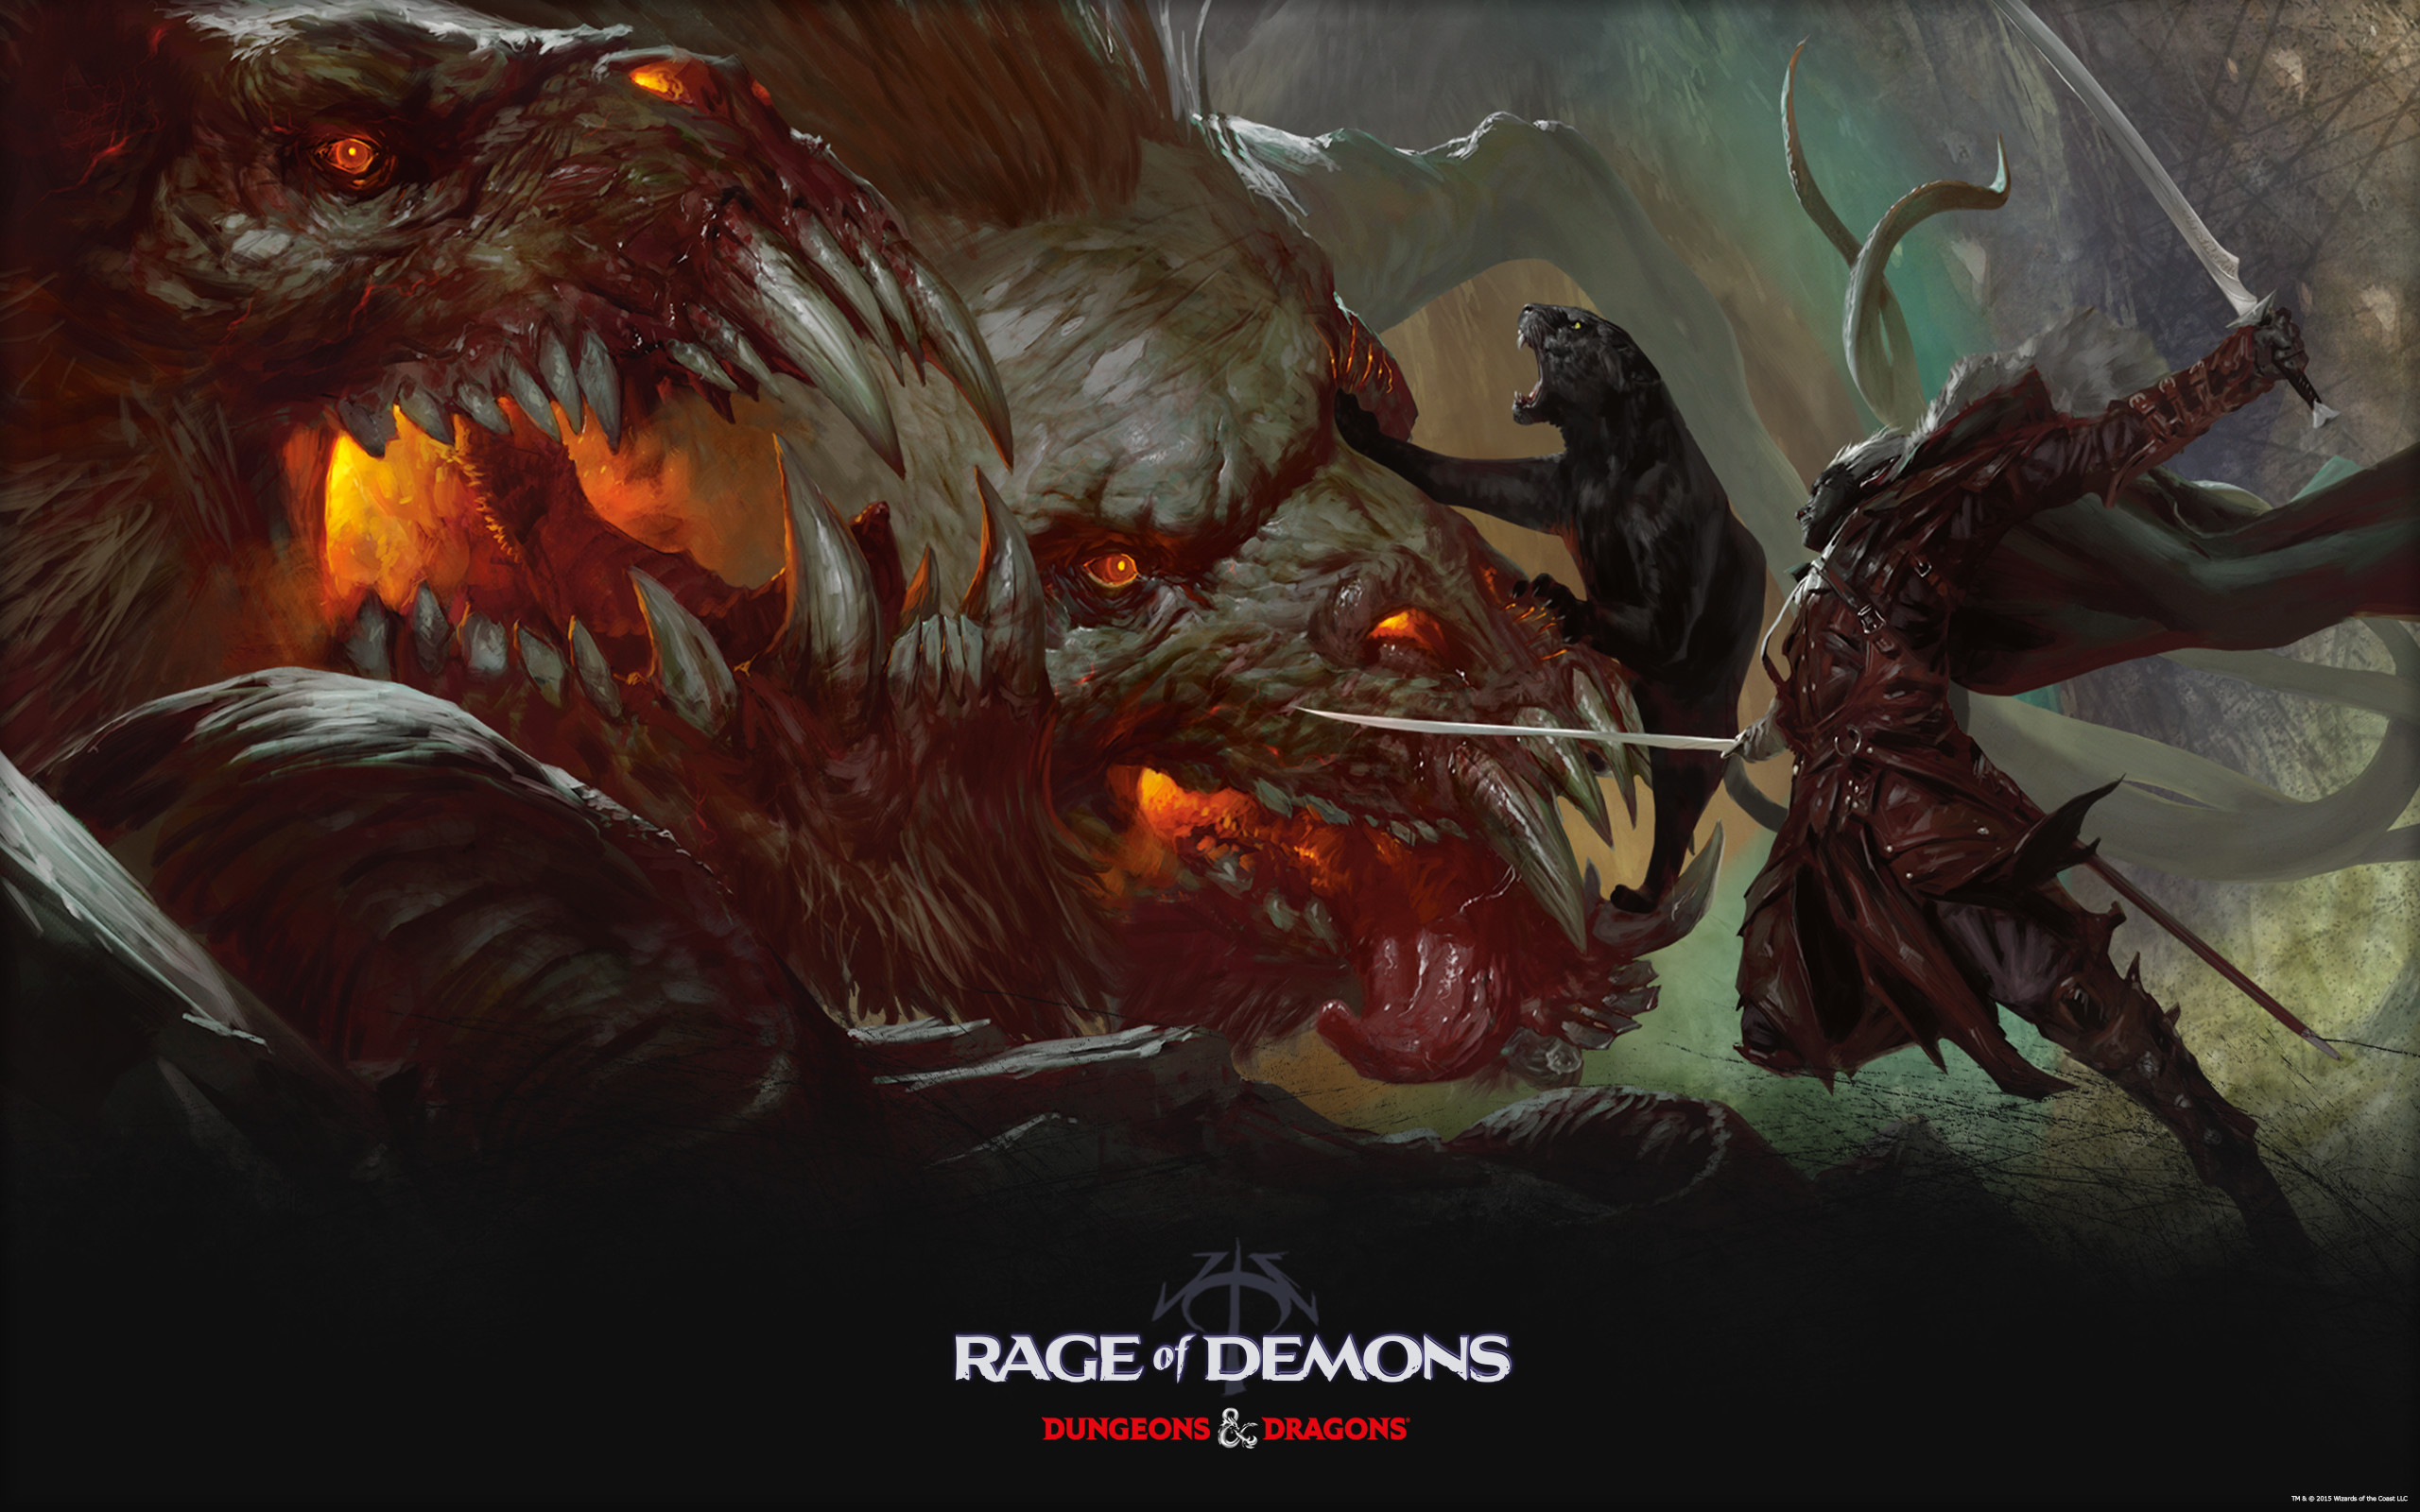 2560x1600 Rage of Demons, a new Dungeons & Dragons Storyline, Coming This Fall